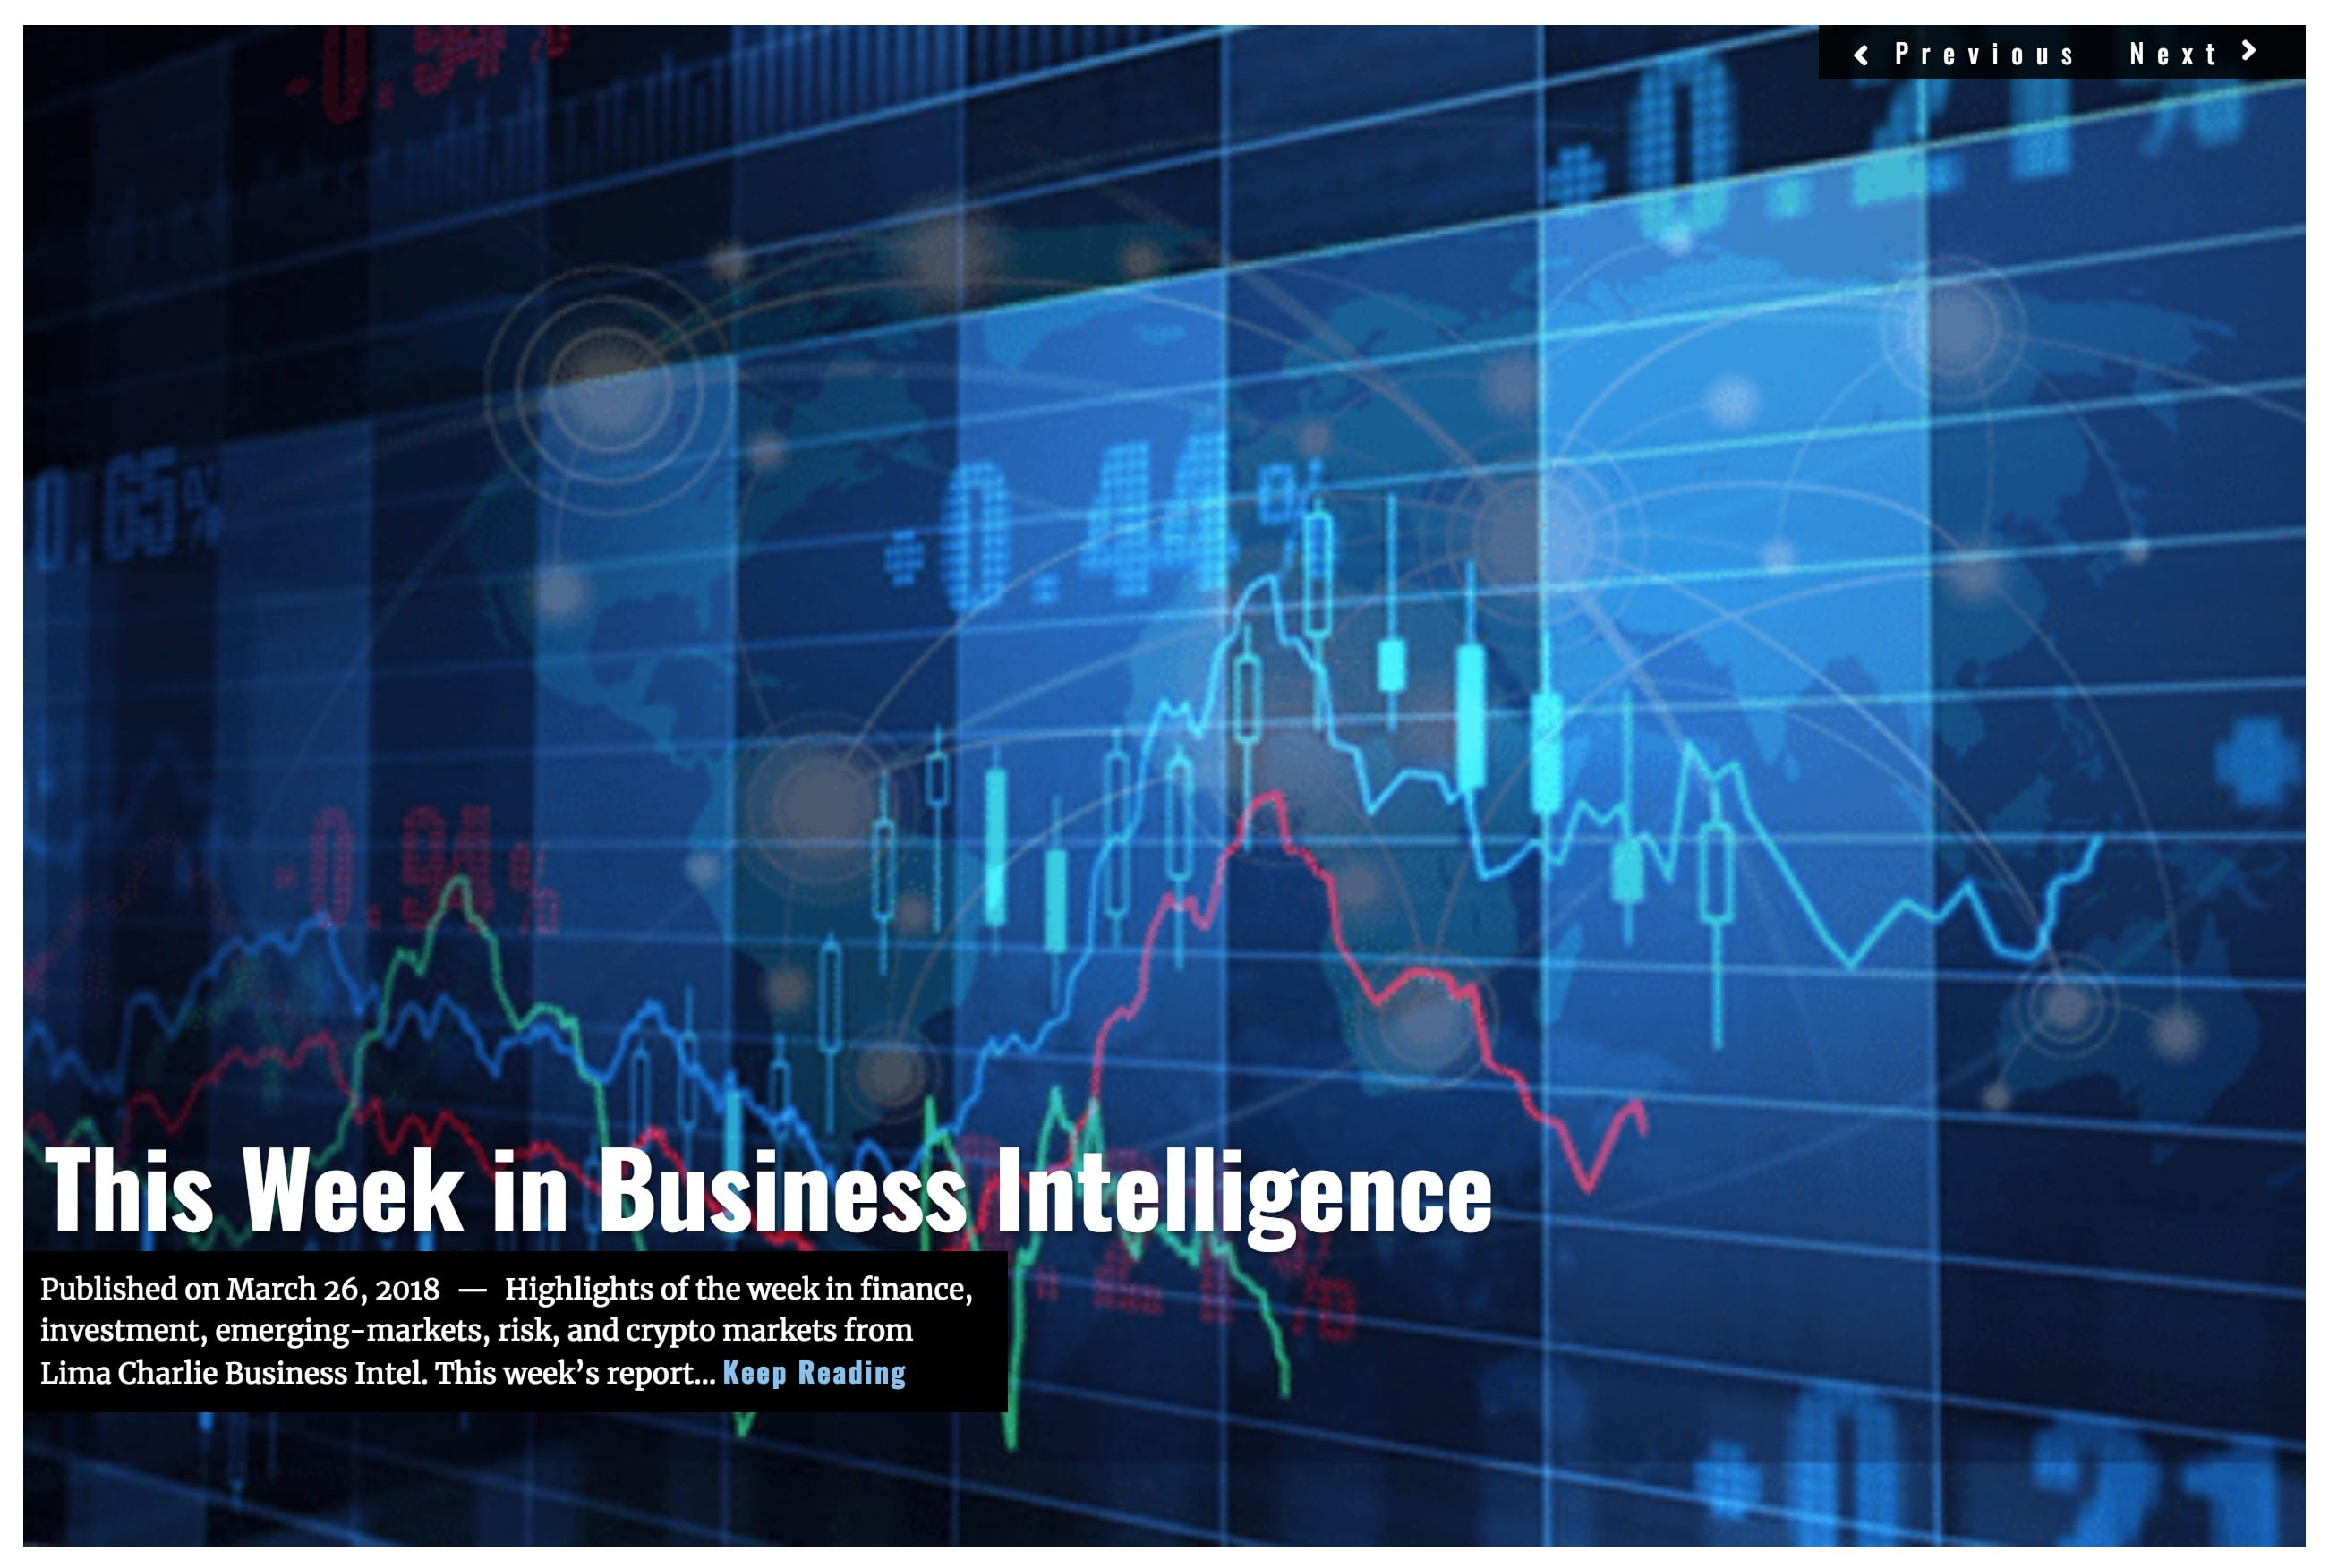 Image Lima Charlie News Headline Week in Business Intelligence MAR 26 2018